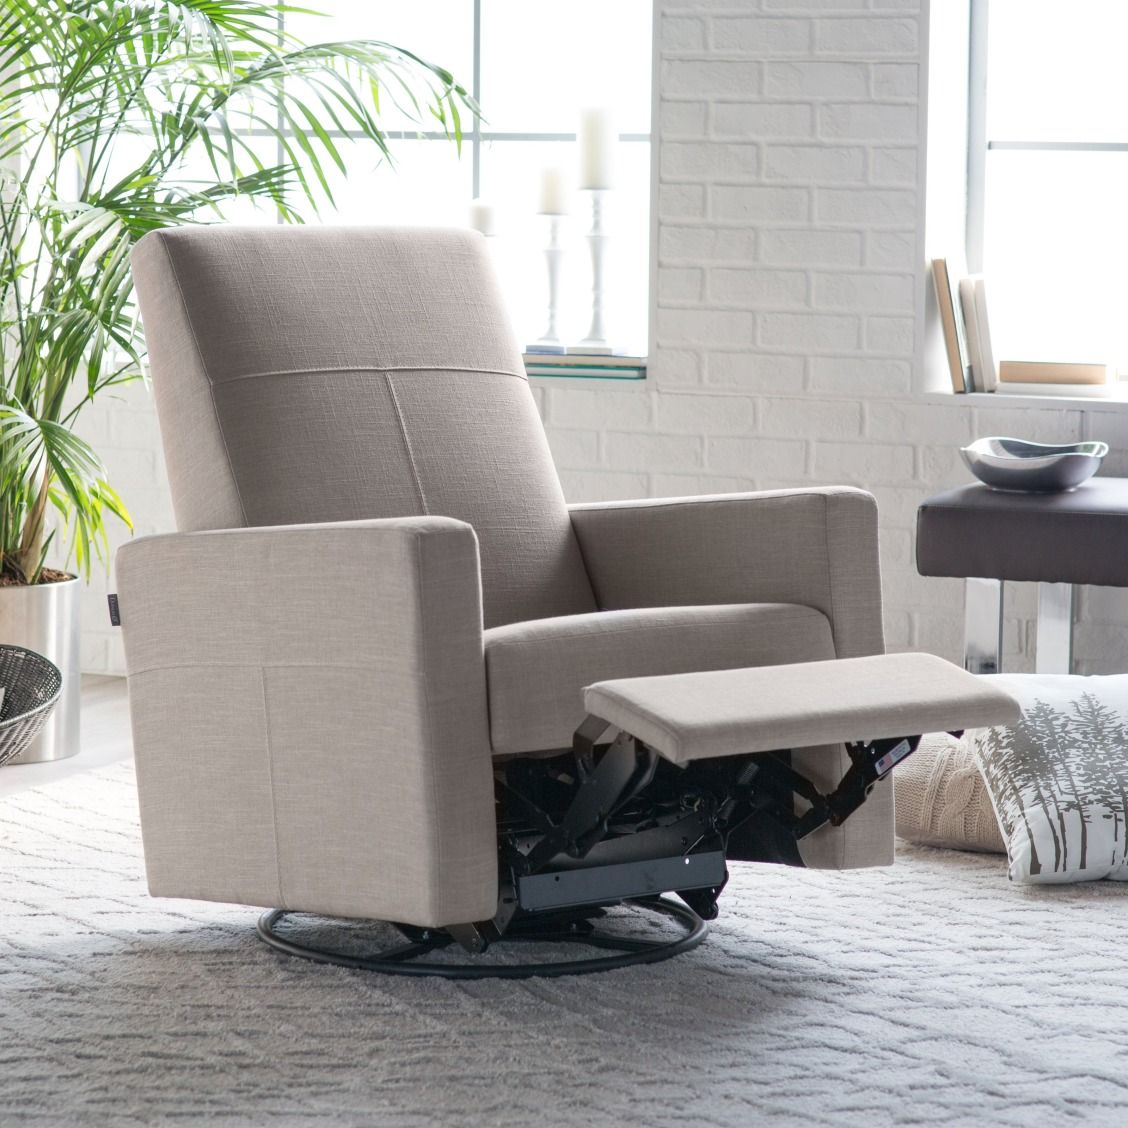 Dutailier Minho Reclining Glider With Built In Footrest Gliders Nursery Rockers At Hayneedle